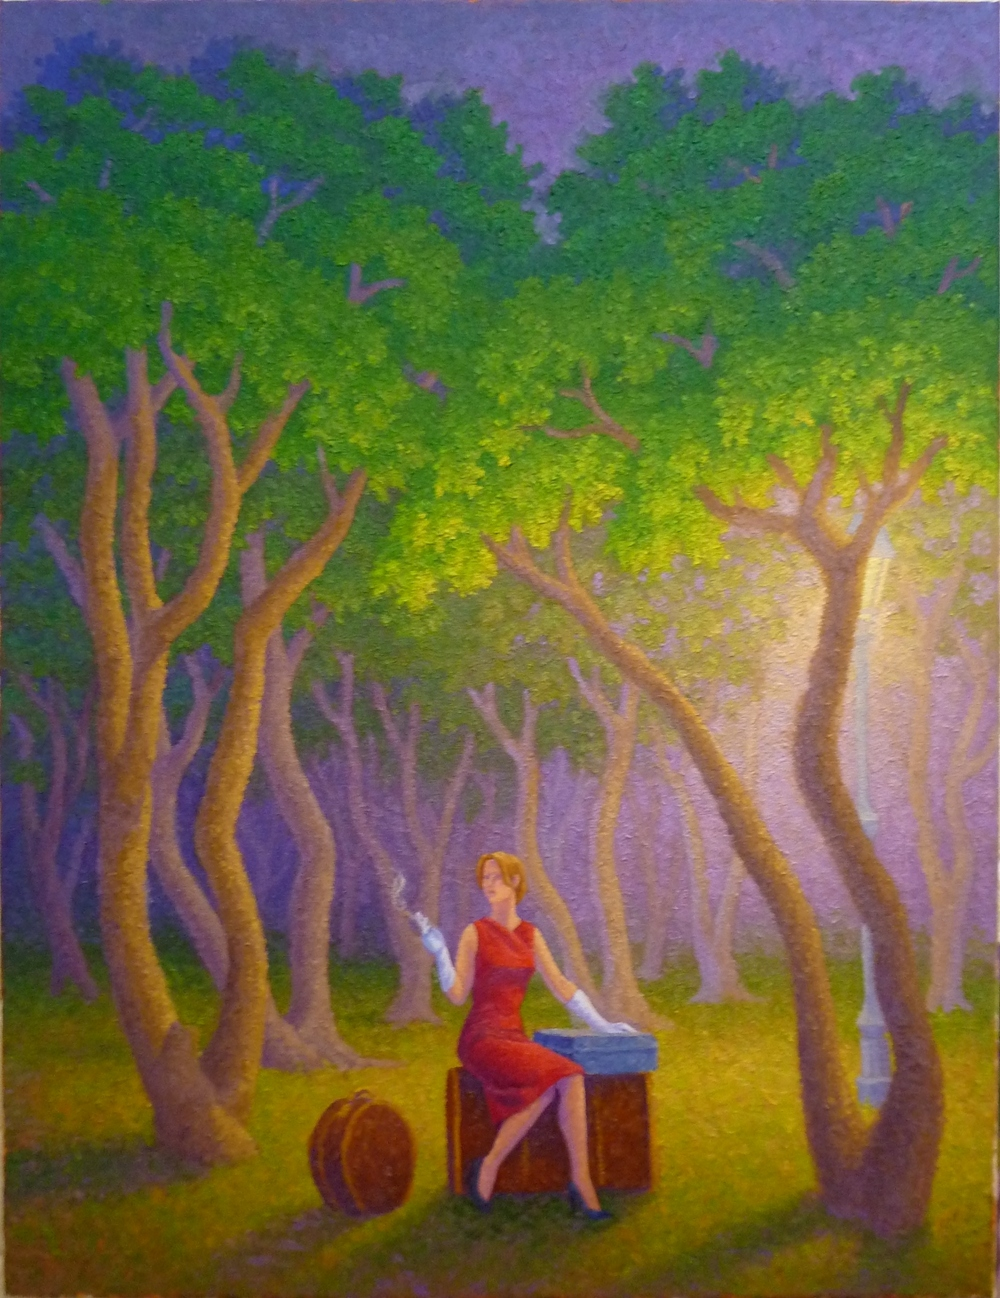 Waiting for Godot, 18 x 24, oil/canvas